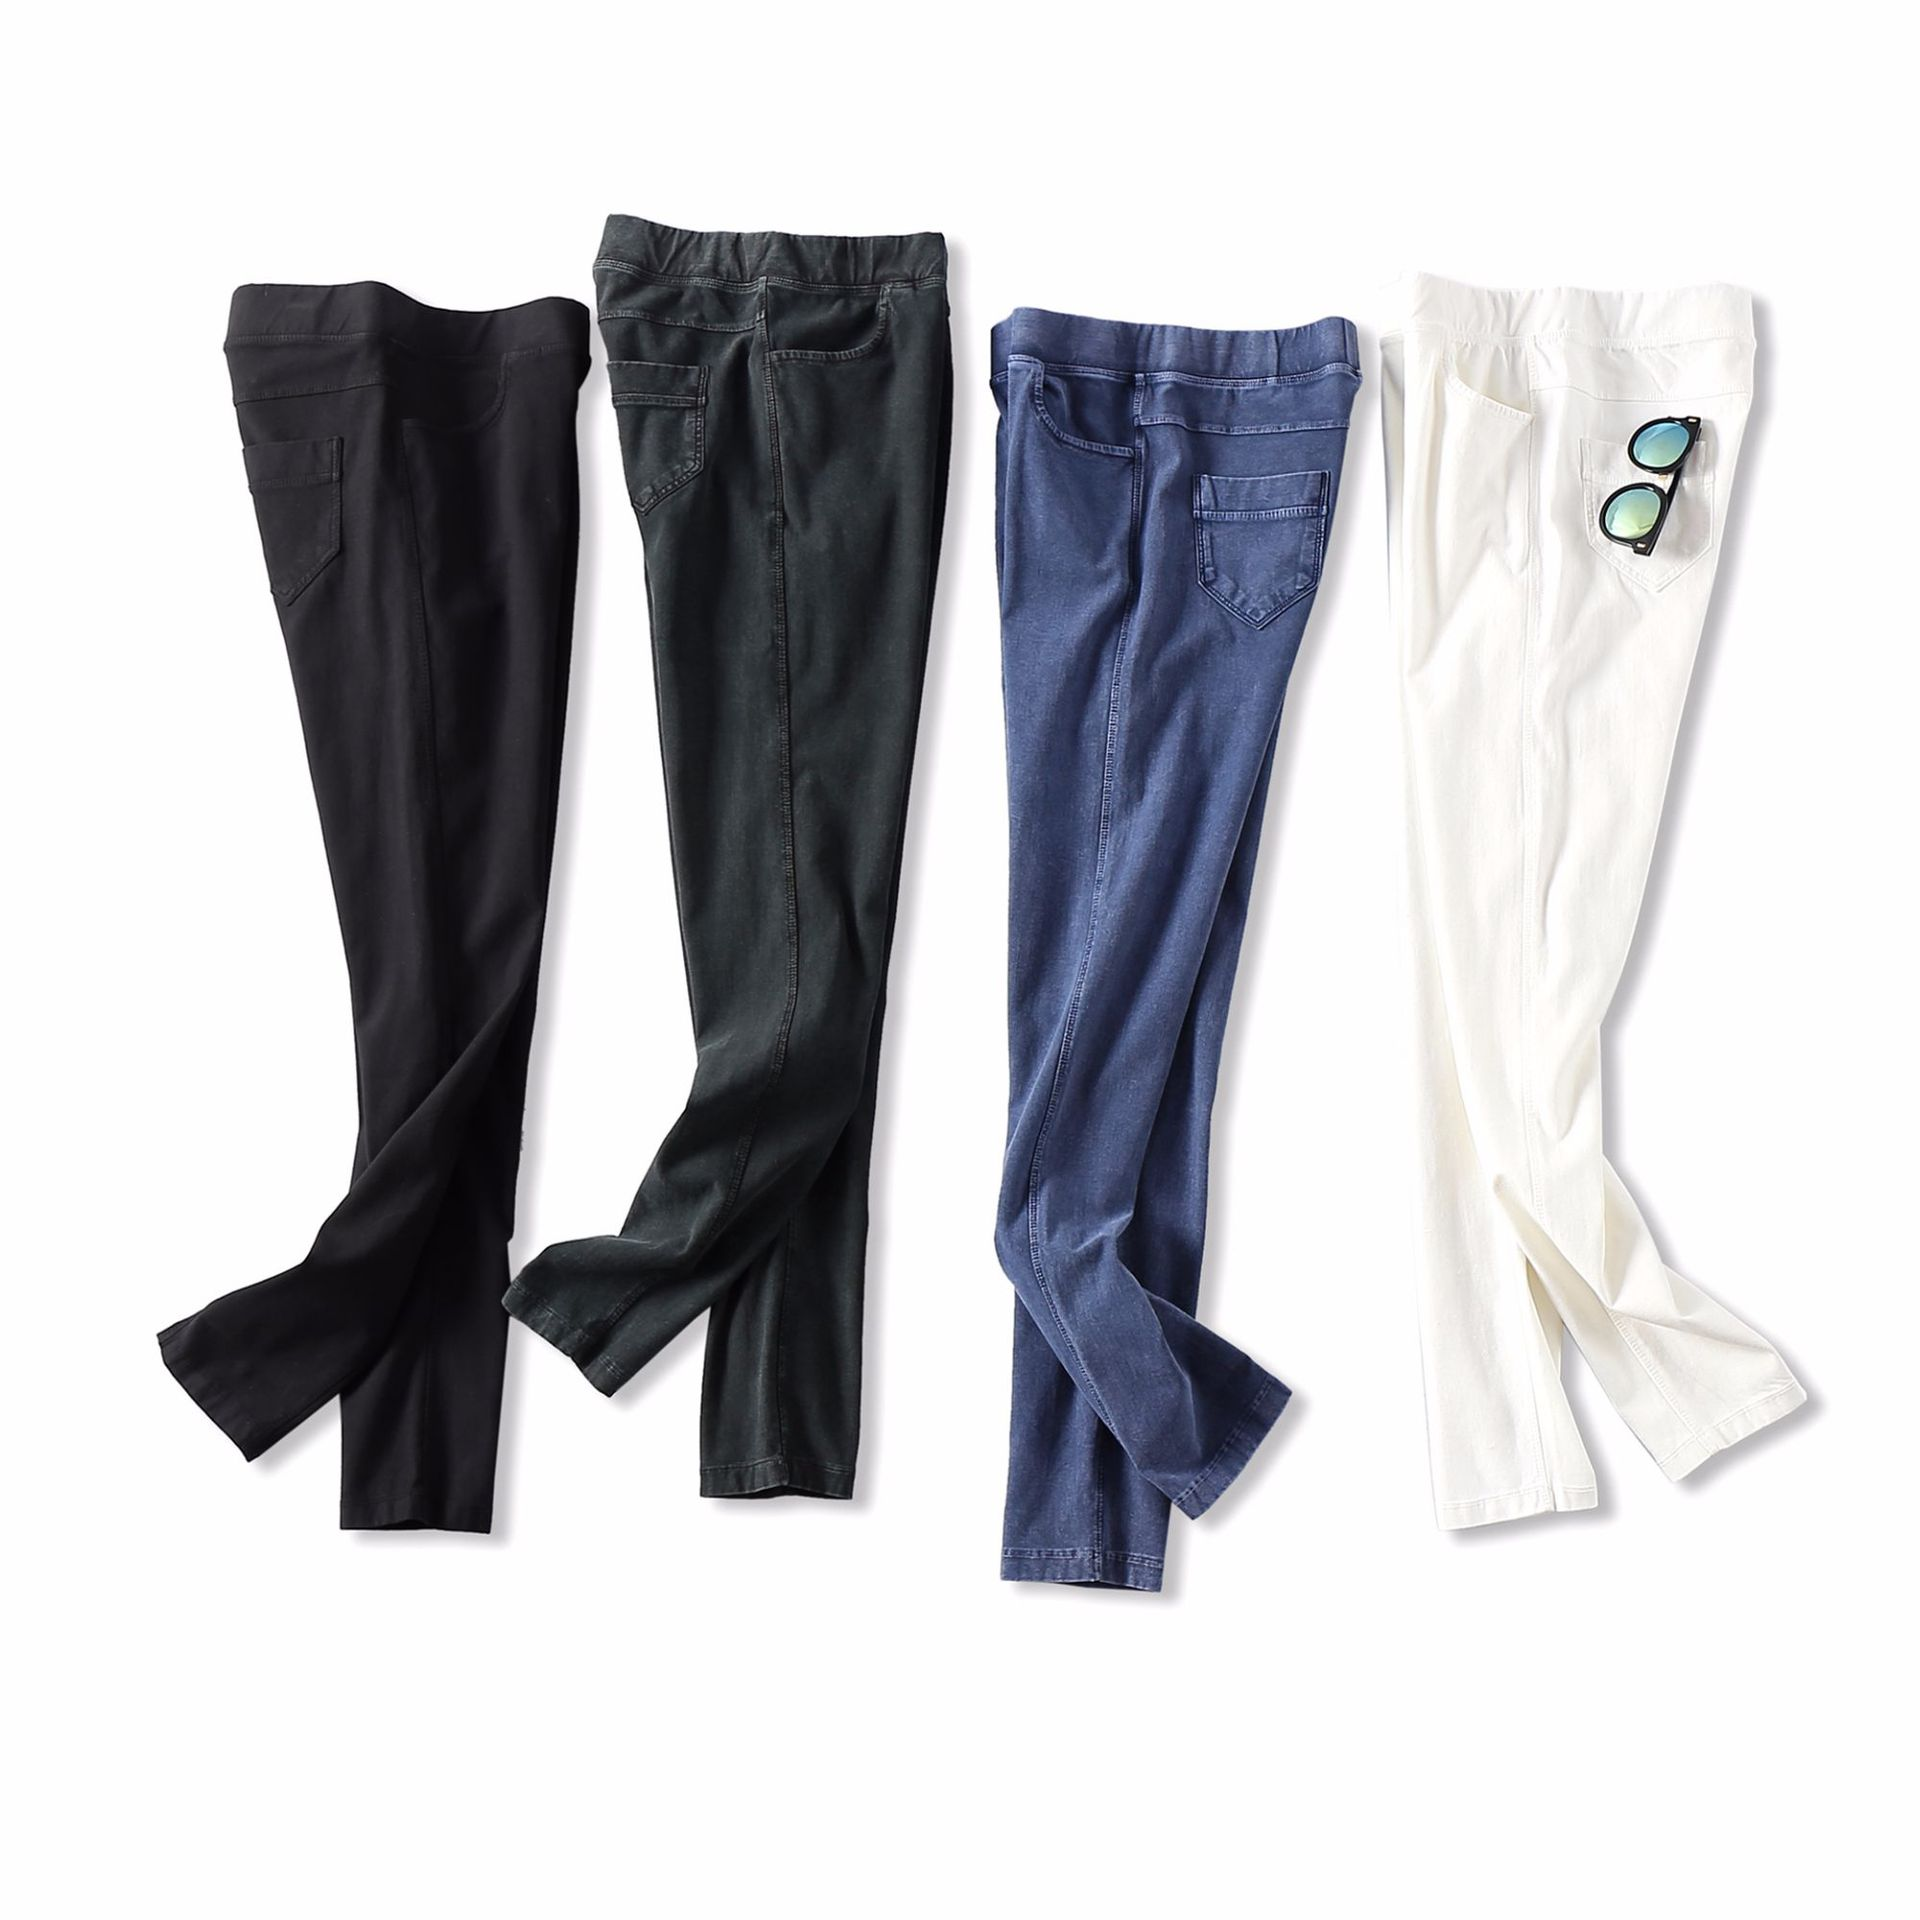 19 Early Spring New Products Hand Multi-Article! Soft And Comfortable Elastic Waist Elasticity Slim Fit Pants Pencil Jeans Women